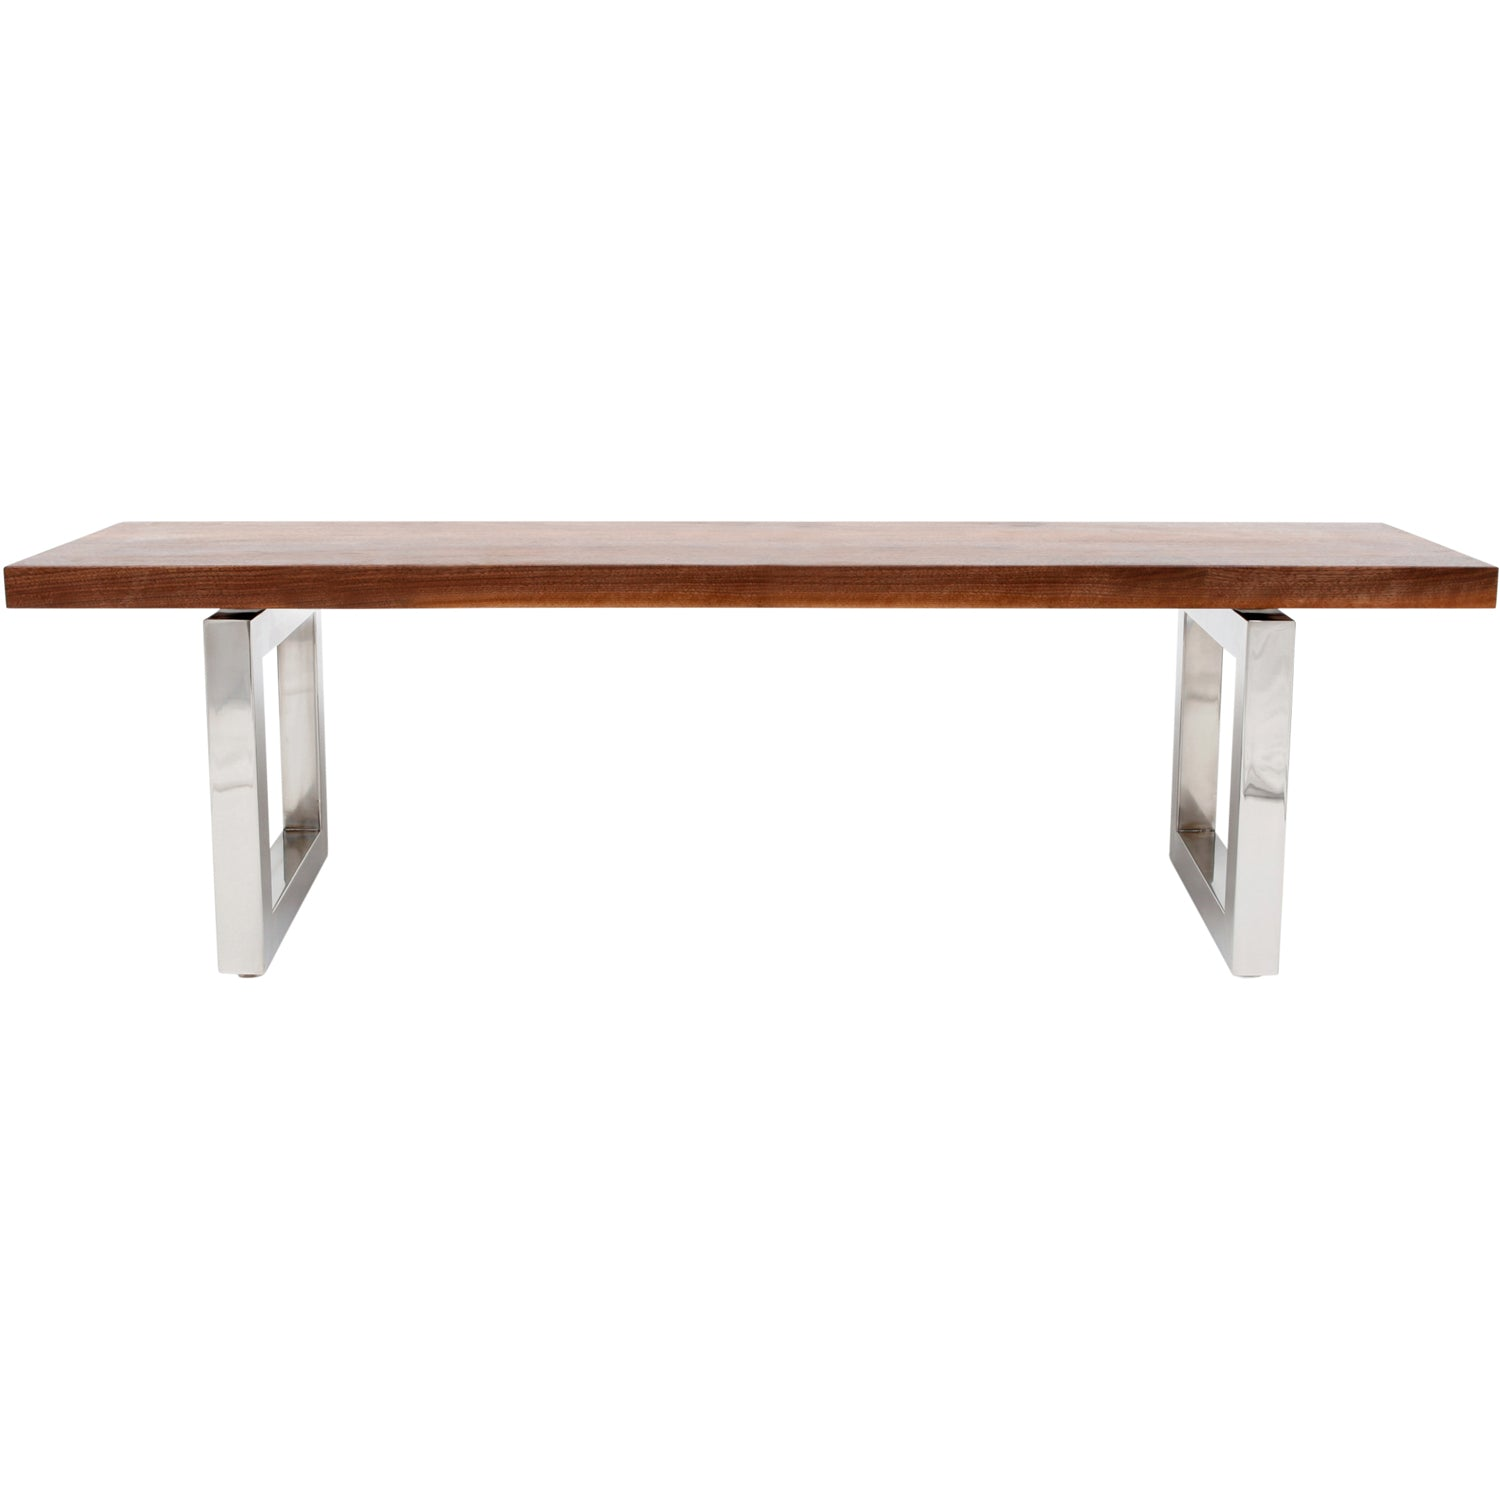 Artless GAX 16 Wood Bench GAX 60W X 16D X 18H Polished Copper